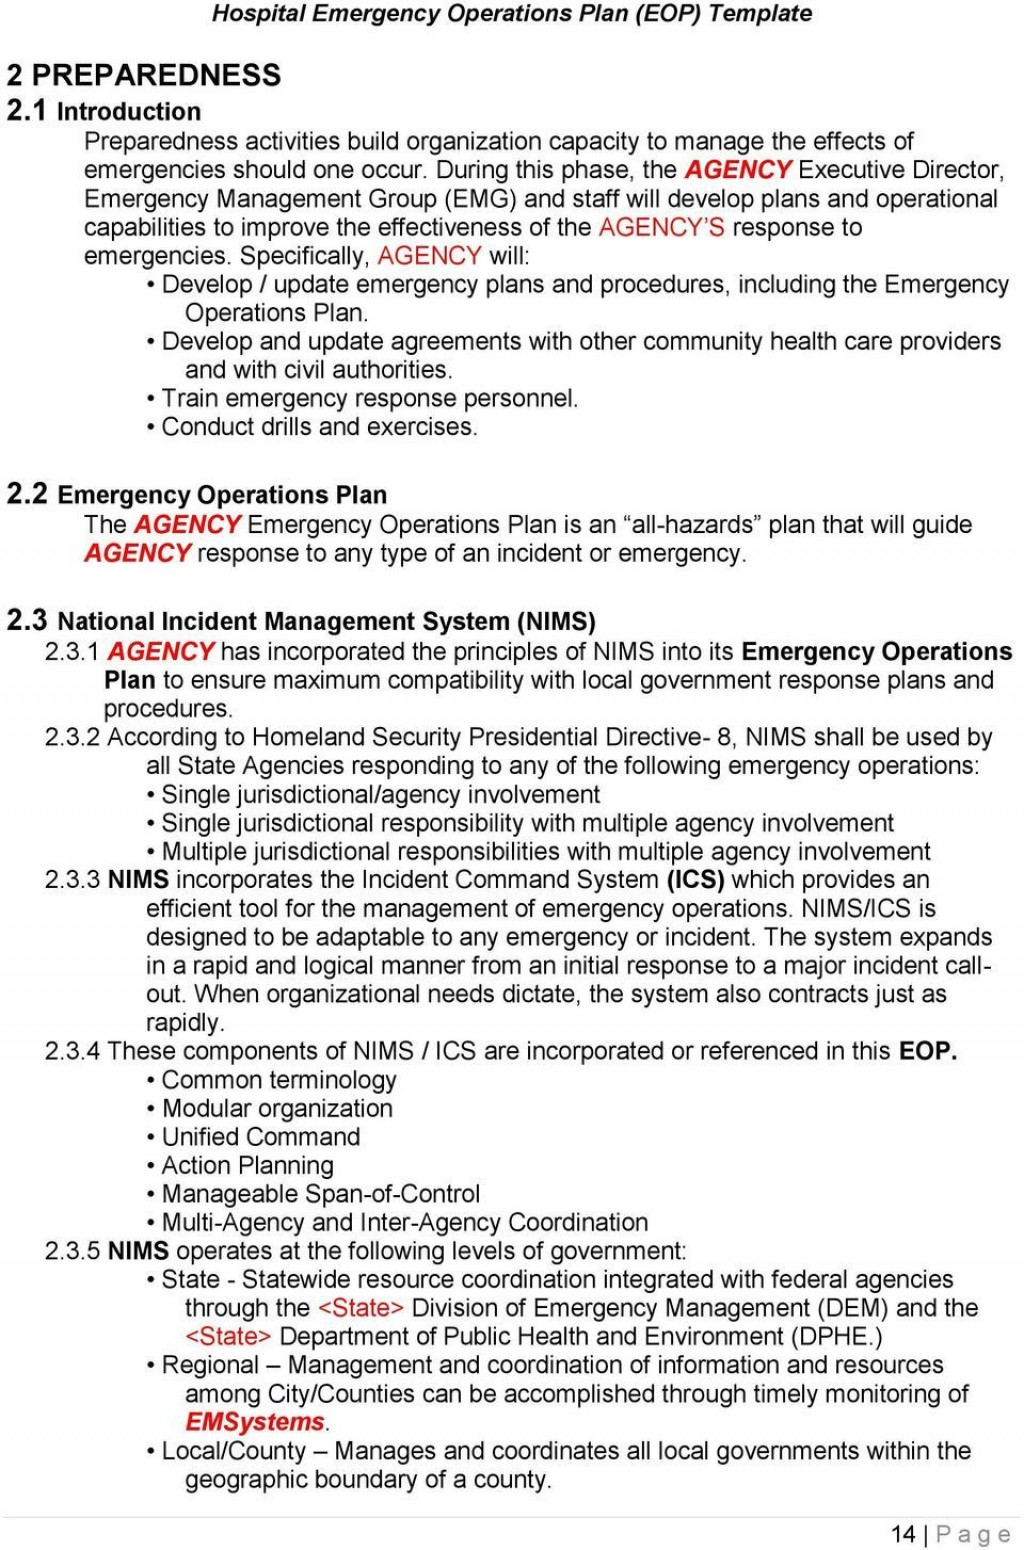 010 Archaicawful Emergency Operation Plan Template High Definition  For Churche Fema BasicLarge